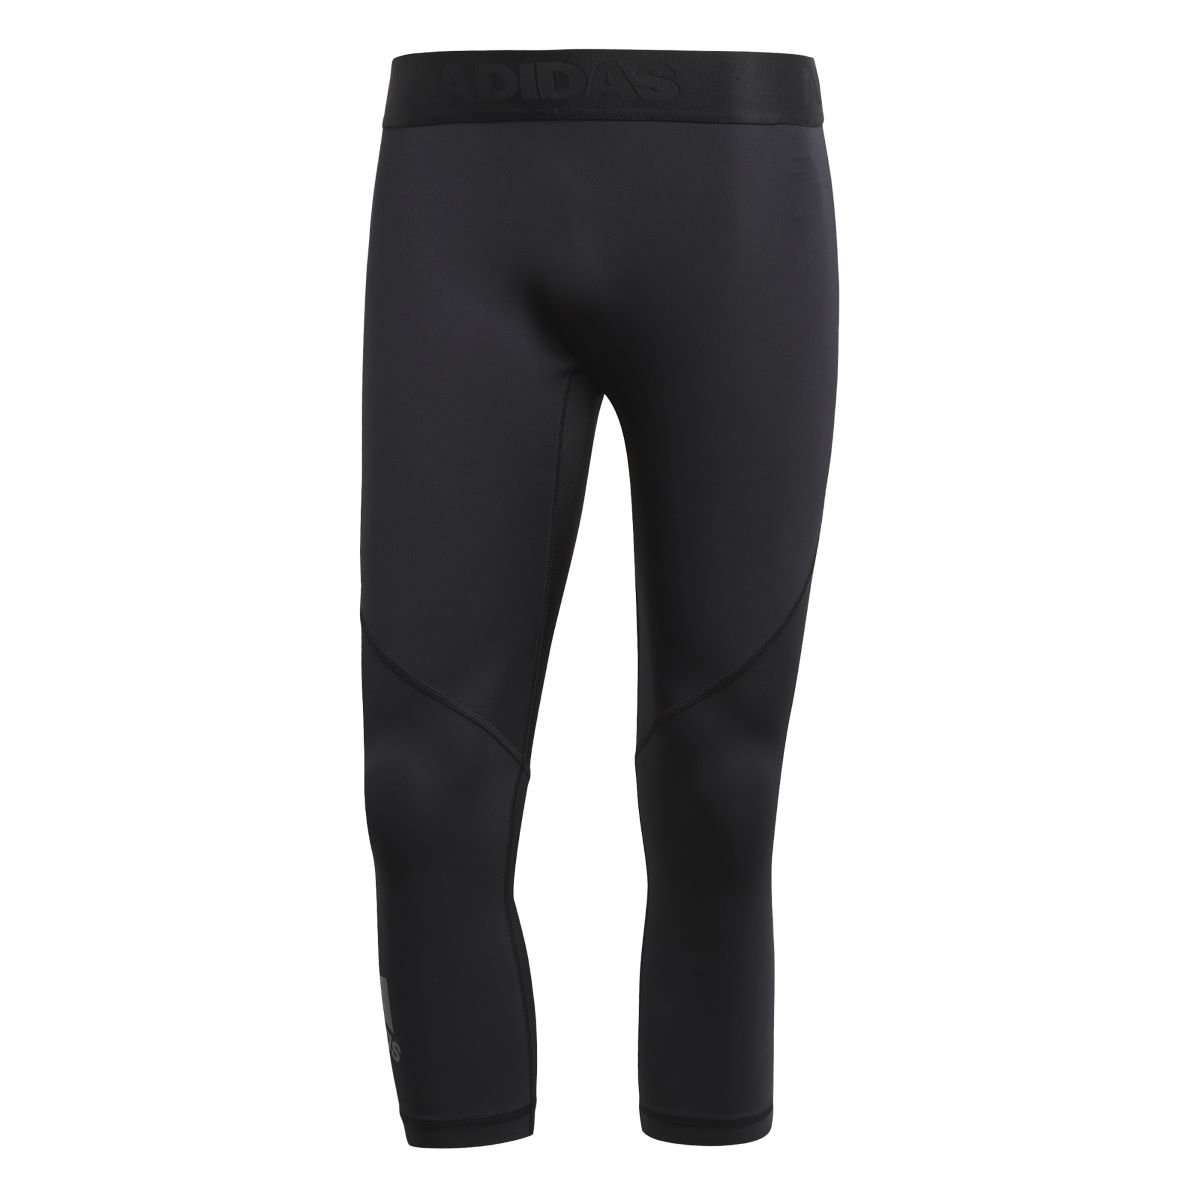 Corsaire adidas Alphaskin Sport - S BLACK Sous-vêtements compression